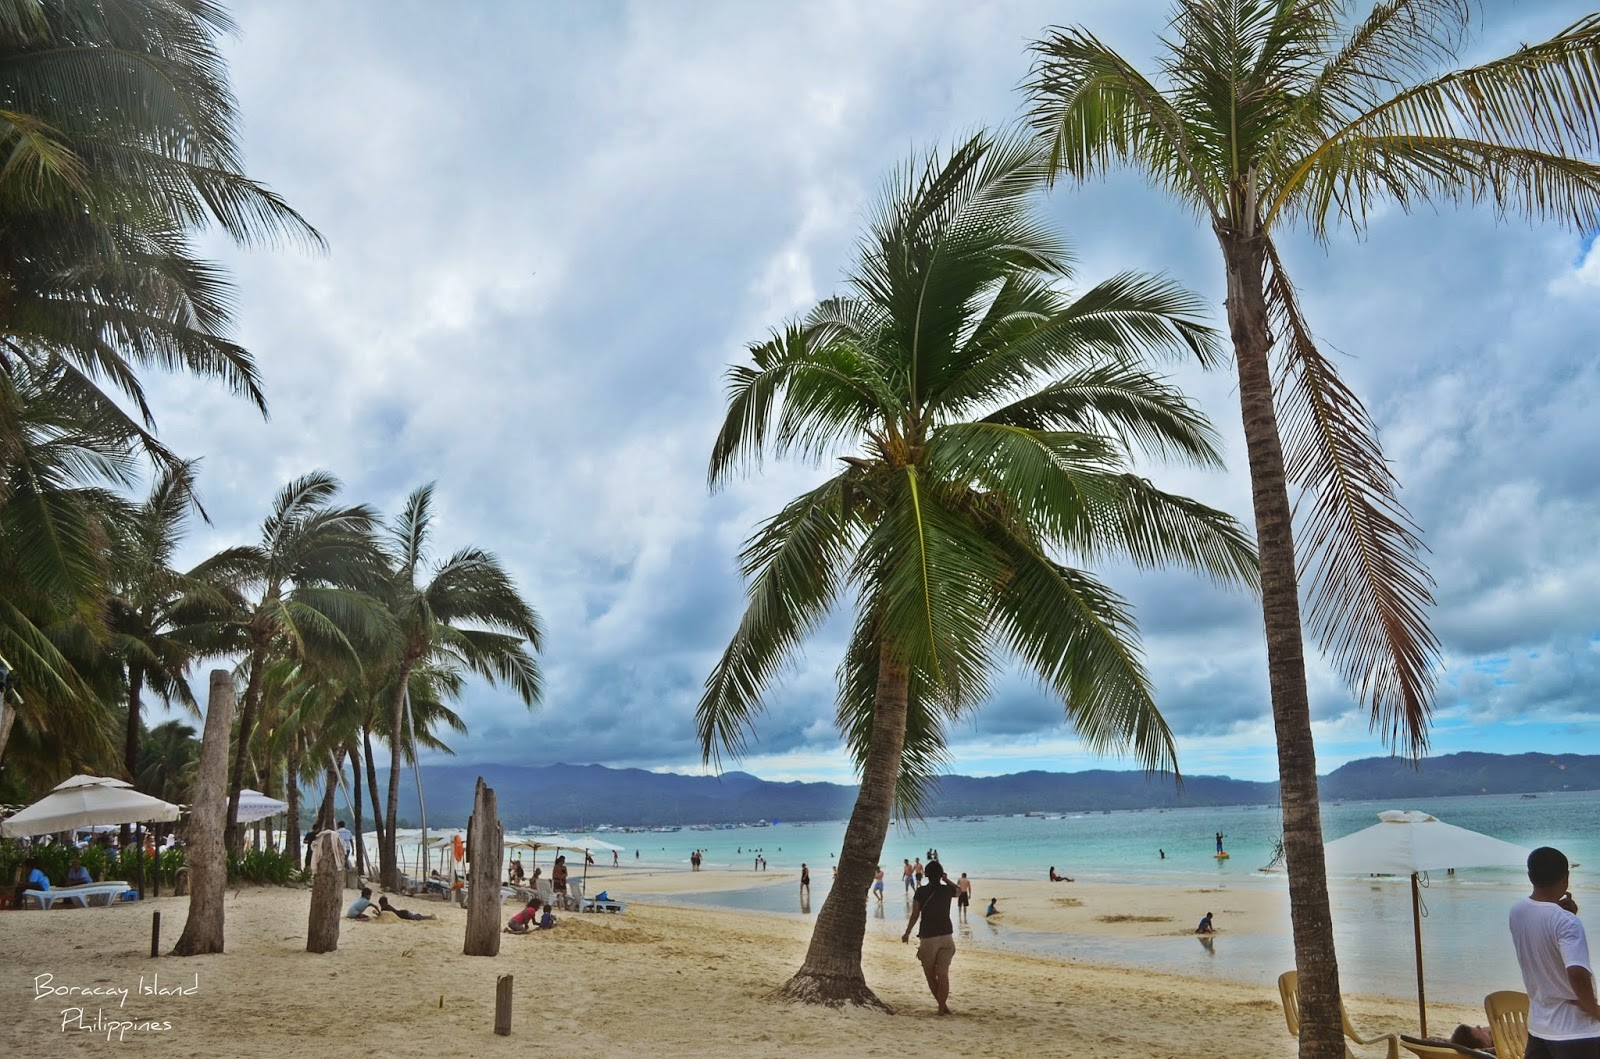 See you next week, Boracay Island!